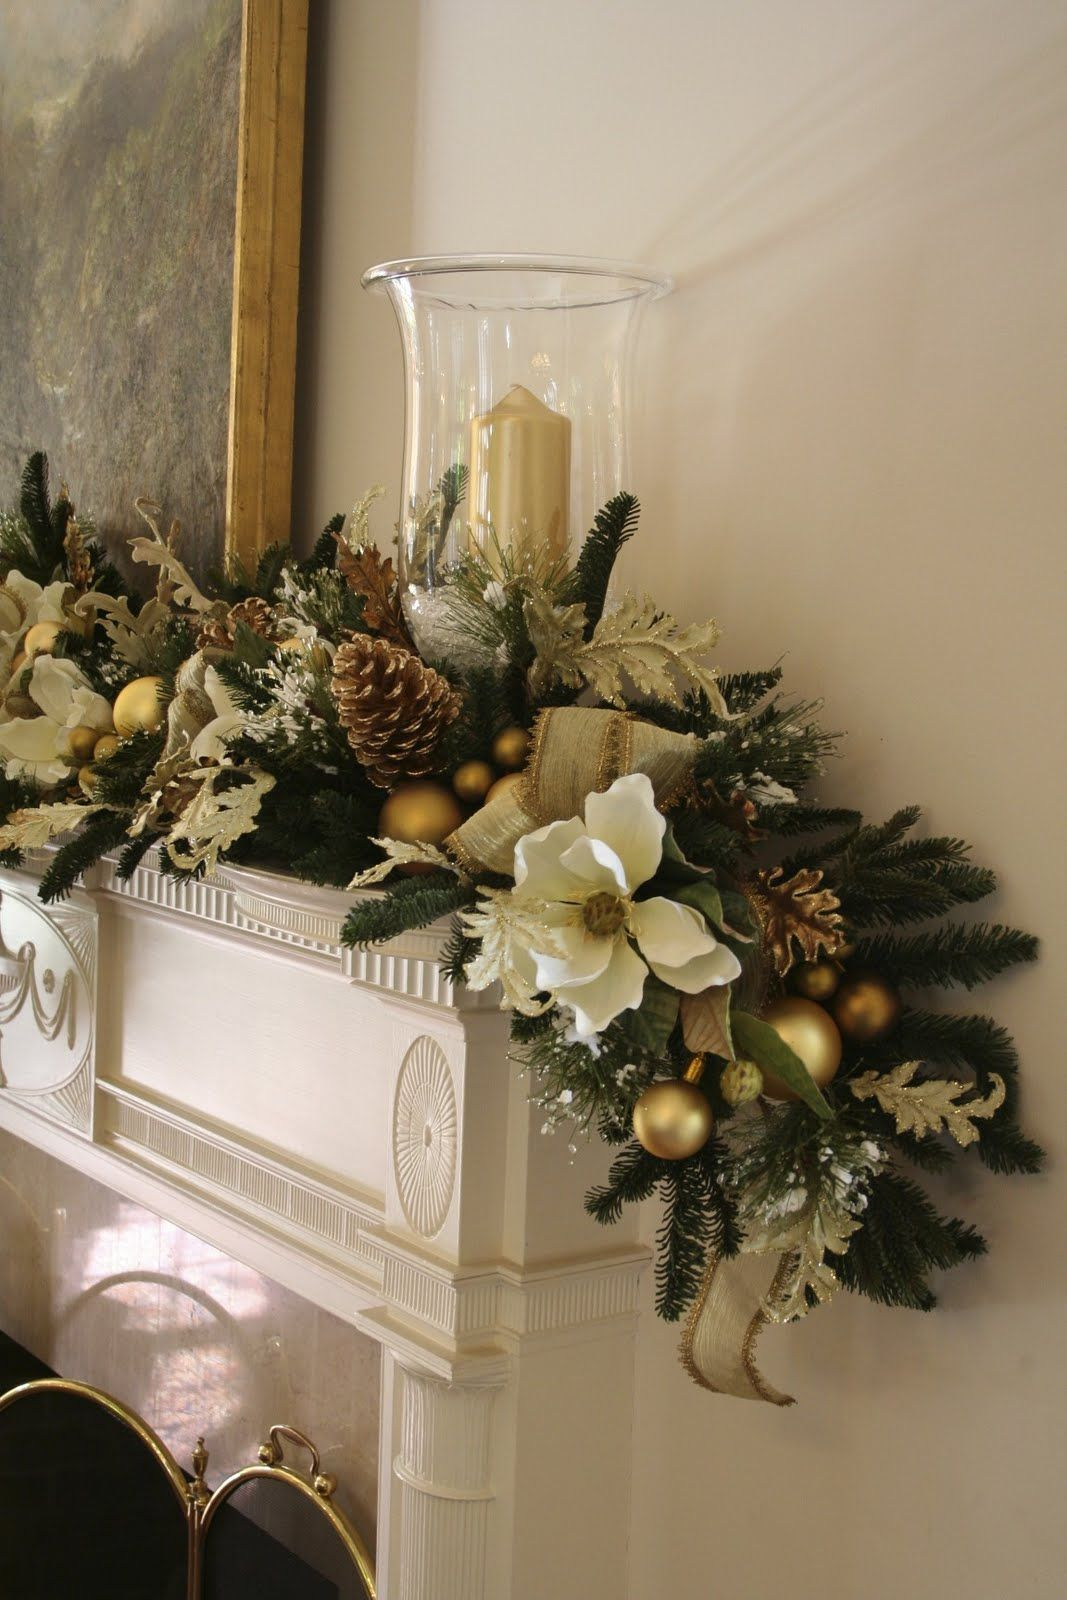 magnolia christmas garland love magnolias makes me miss my magnnolia tree in ohio